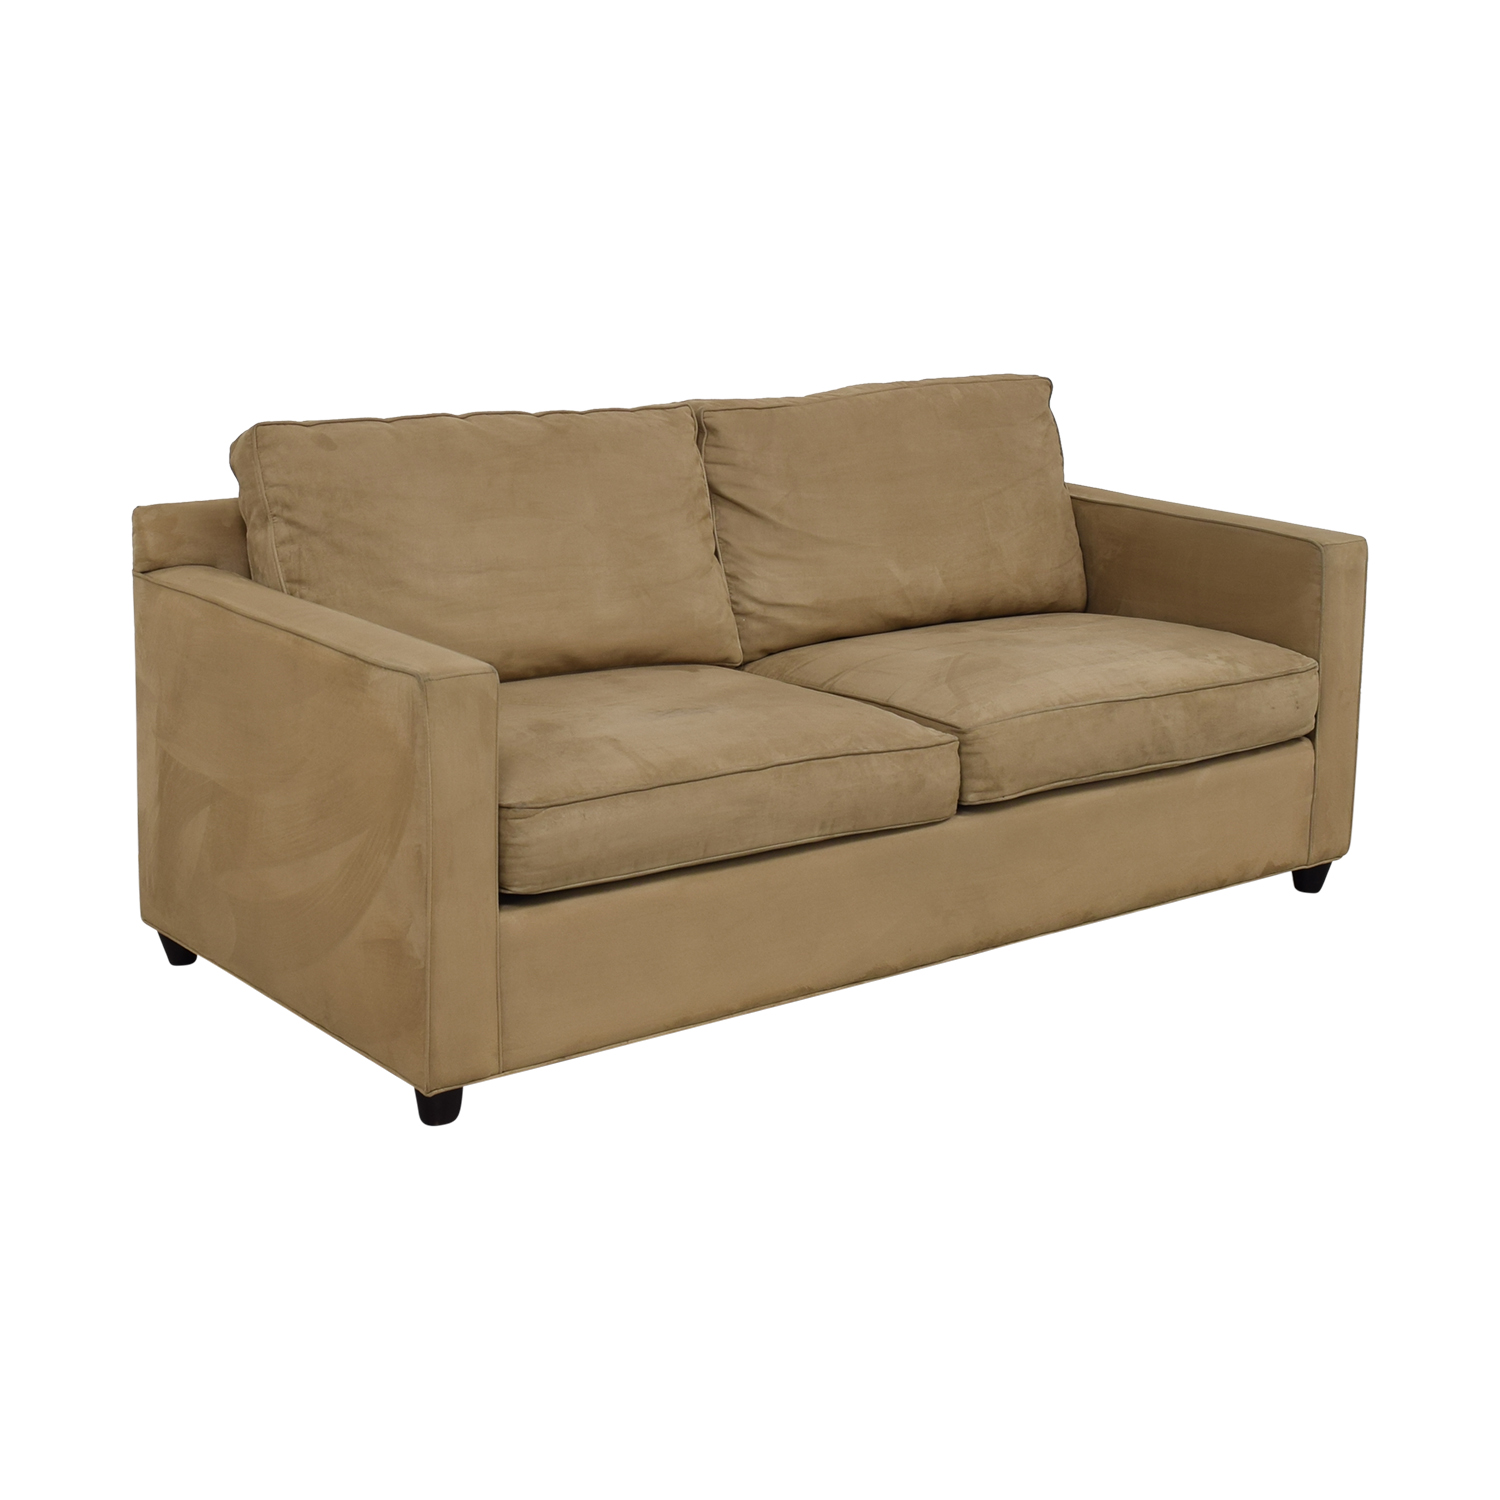 Crate & Barrel Crate & Barrel Beige Sofa coupon